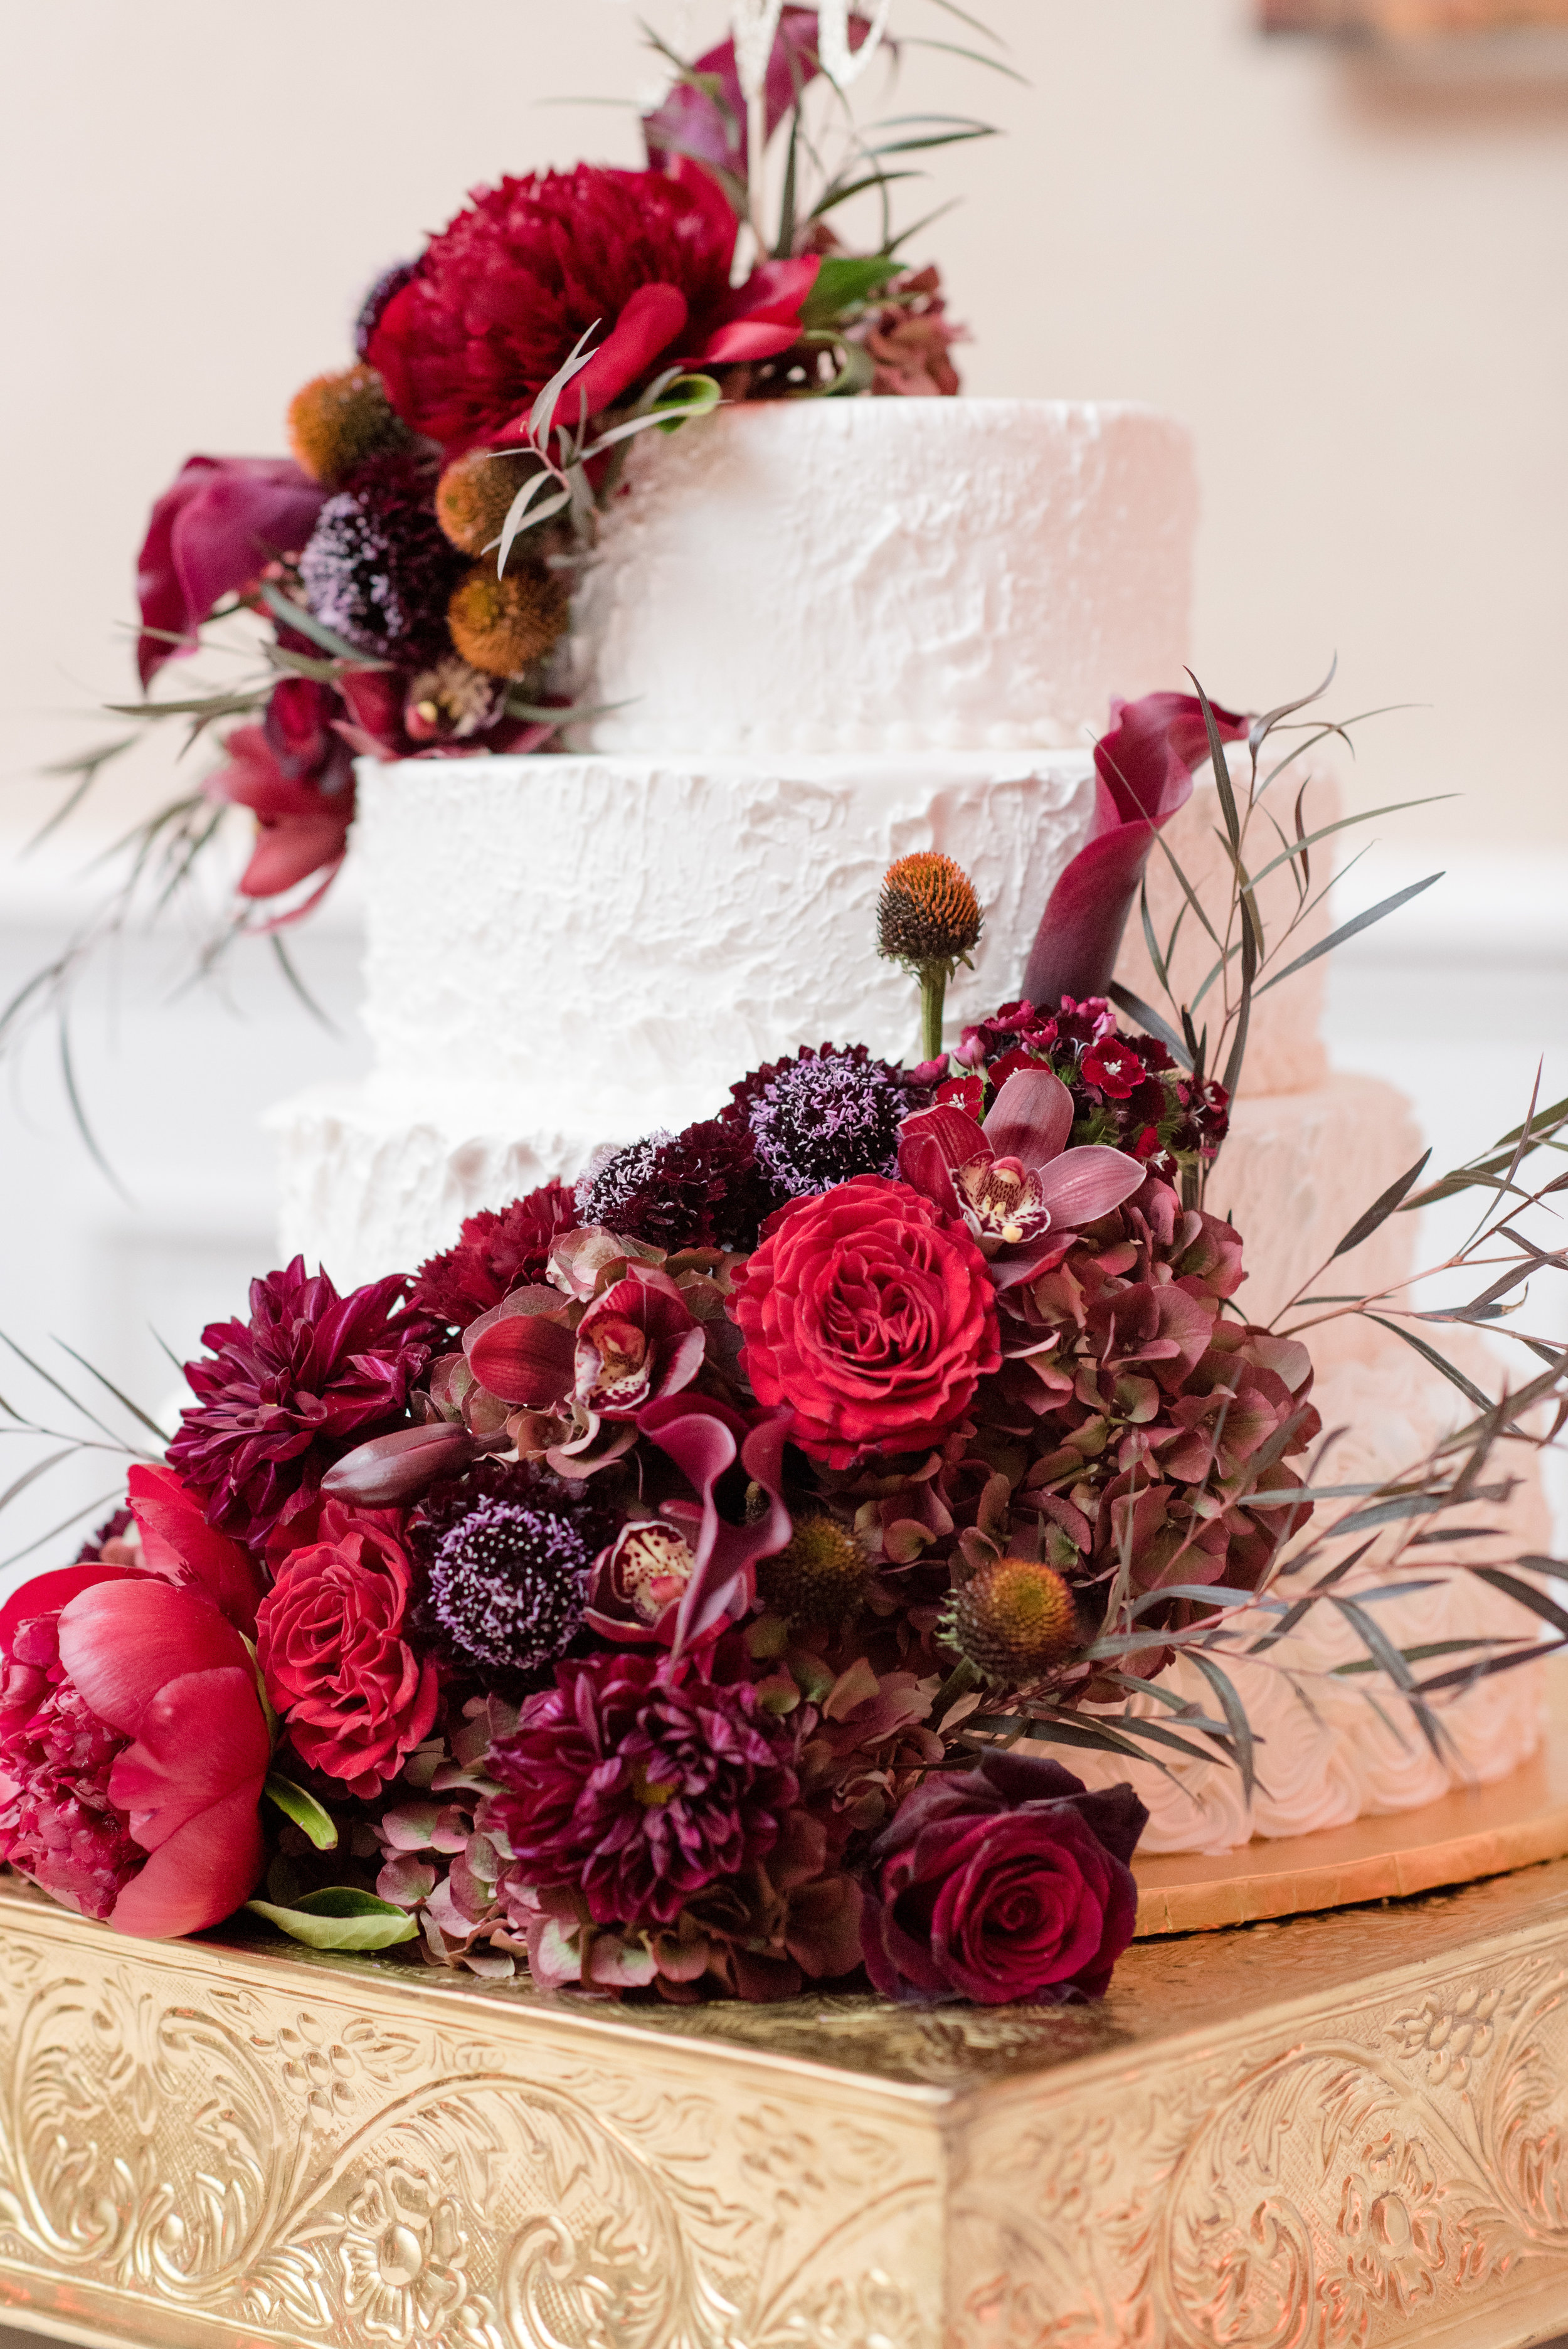 White wedding cake with dark red black and purple fall flowers